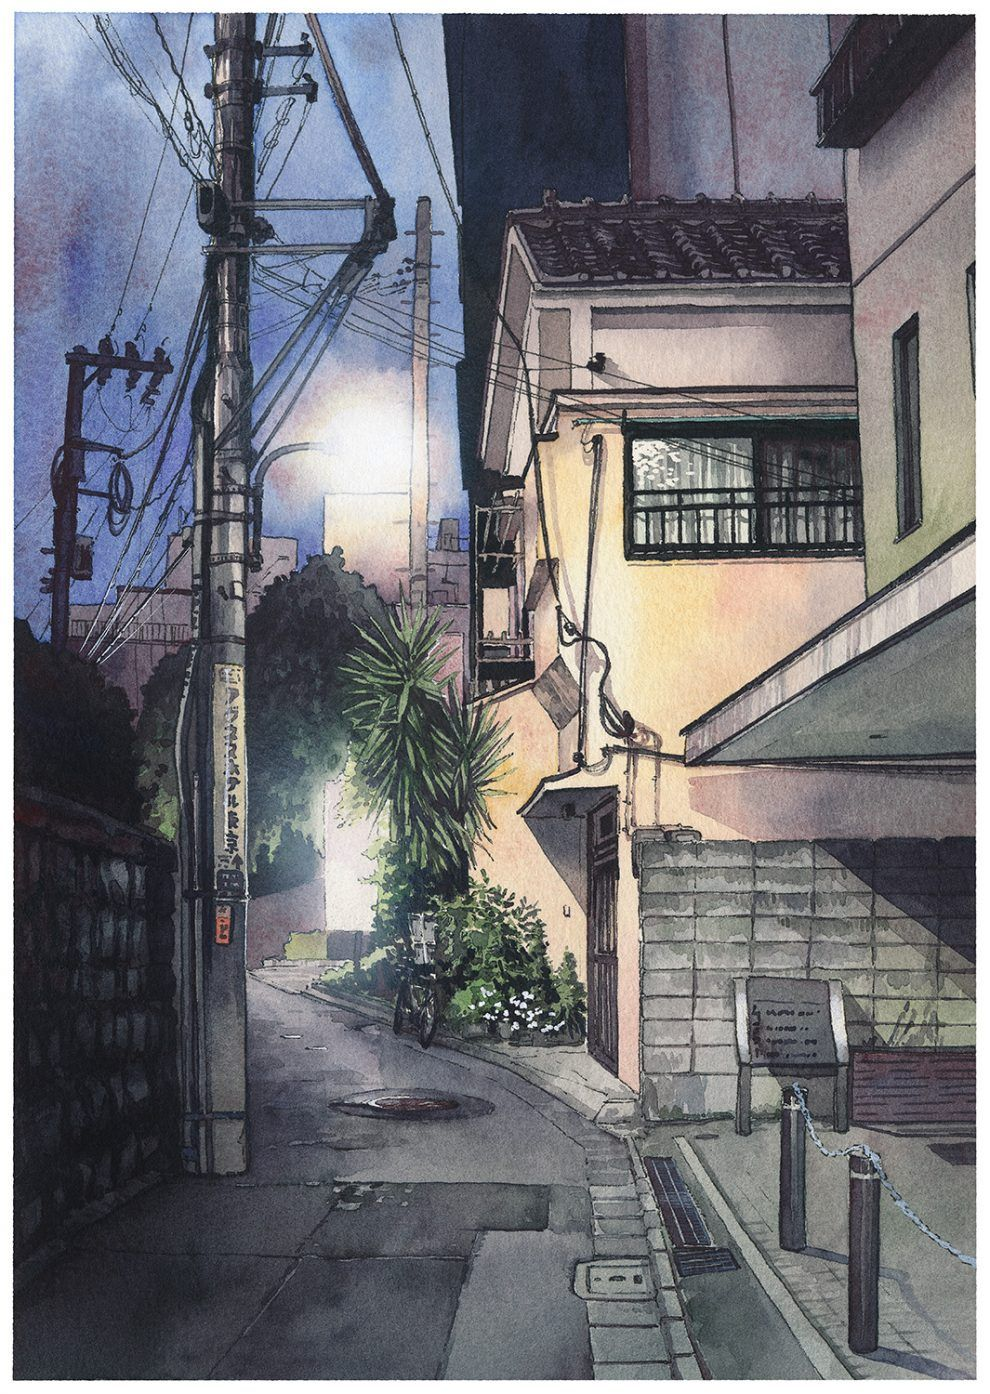 Watercolor Illustrations Depicting Night Streets Of Tokyo By Mateusz Urbanowicz Watercolor City Japan Watercolor Anime City